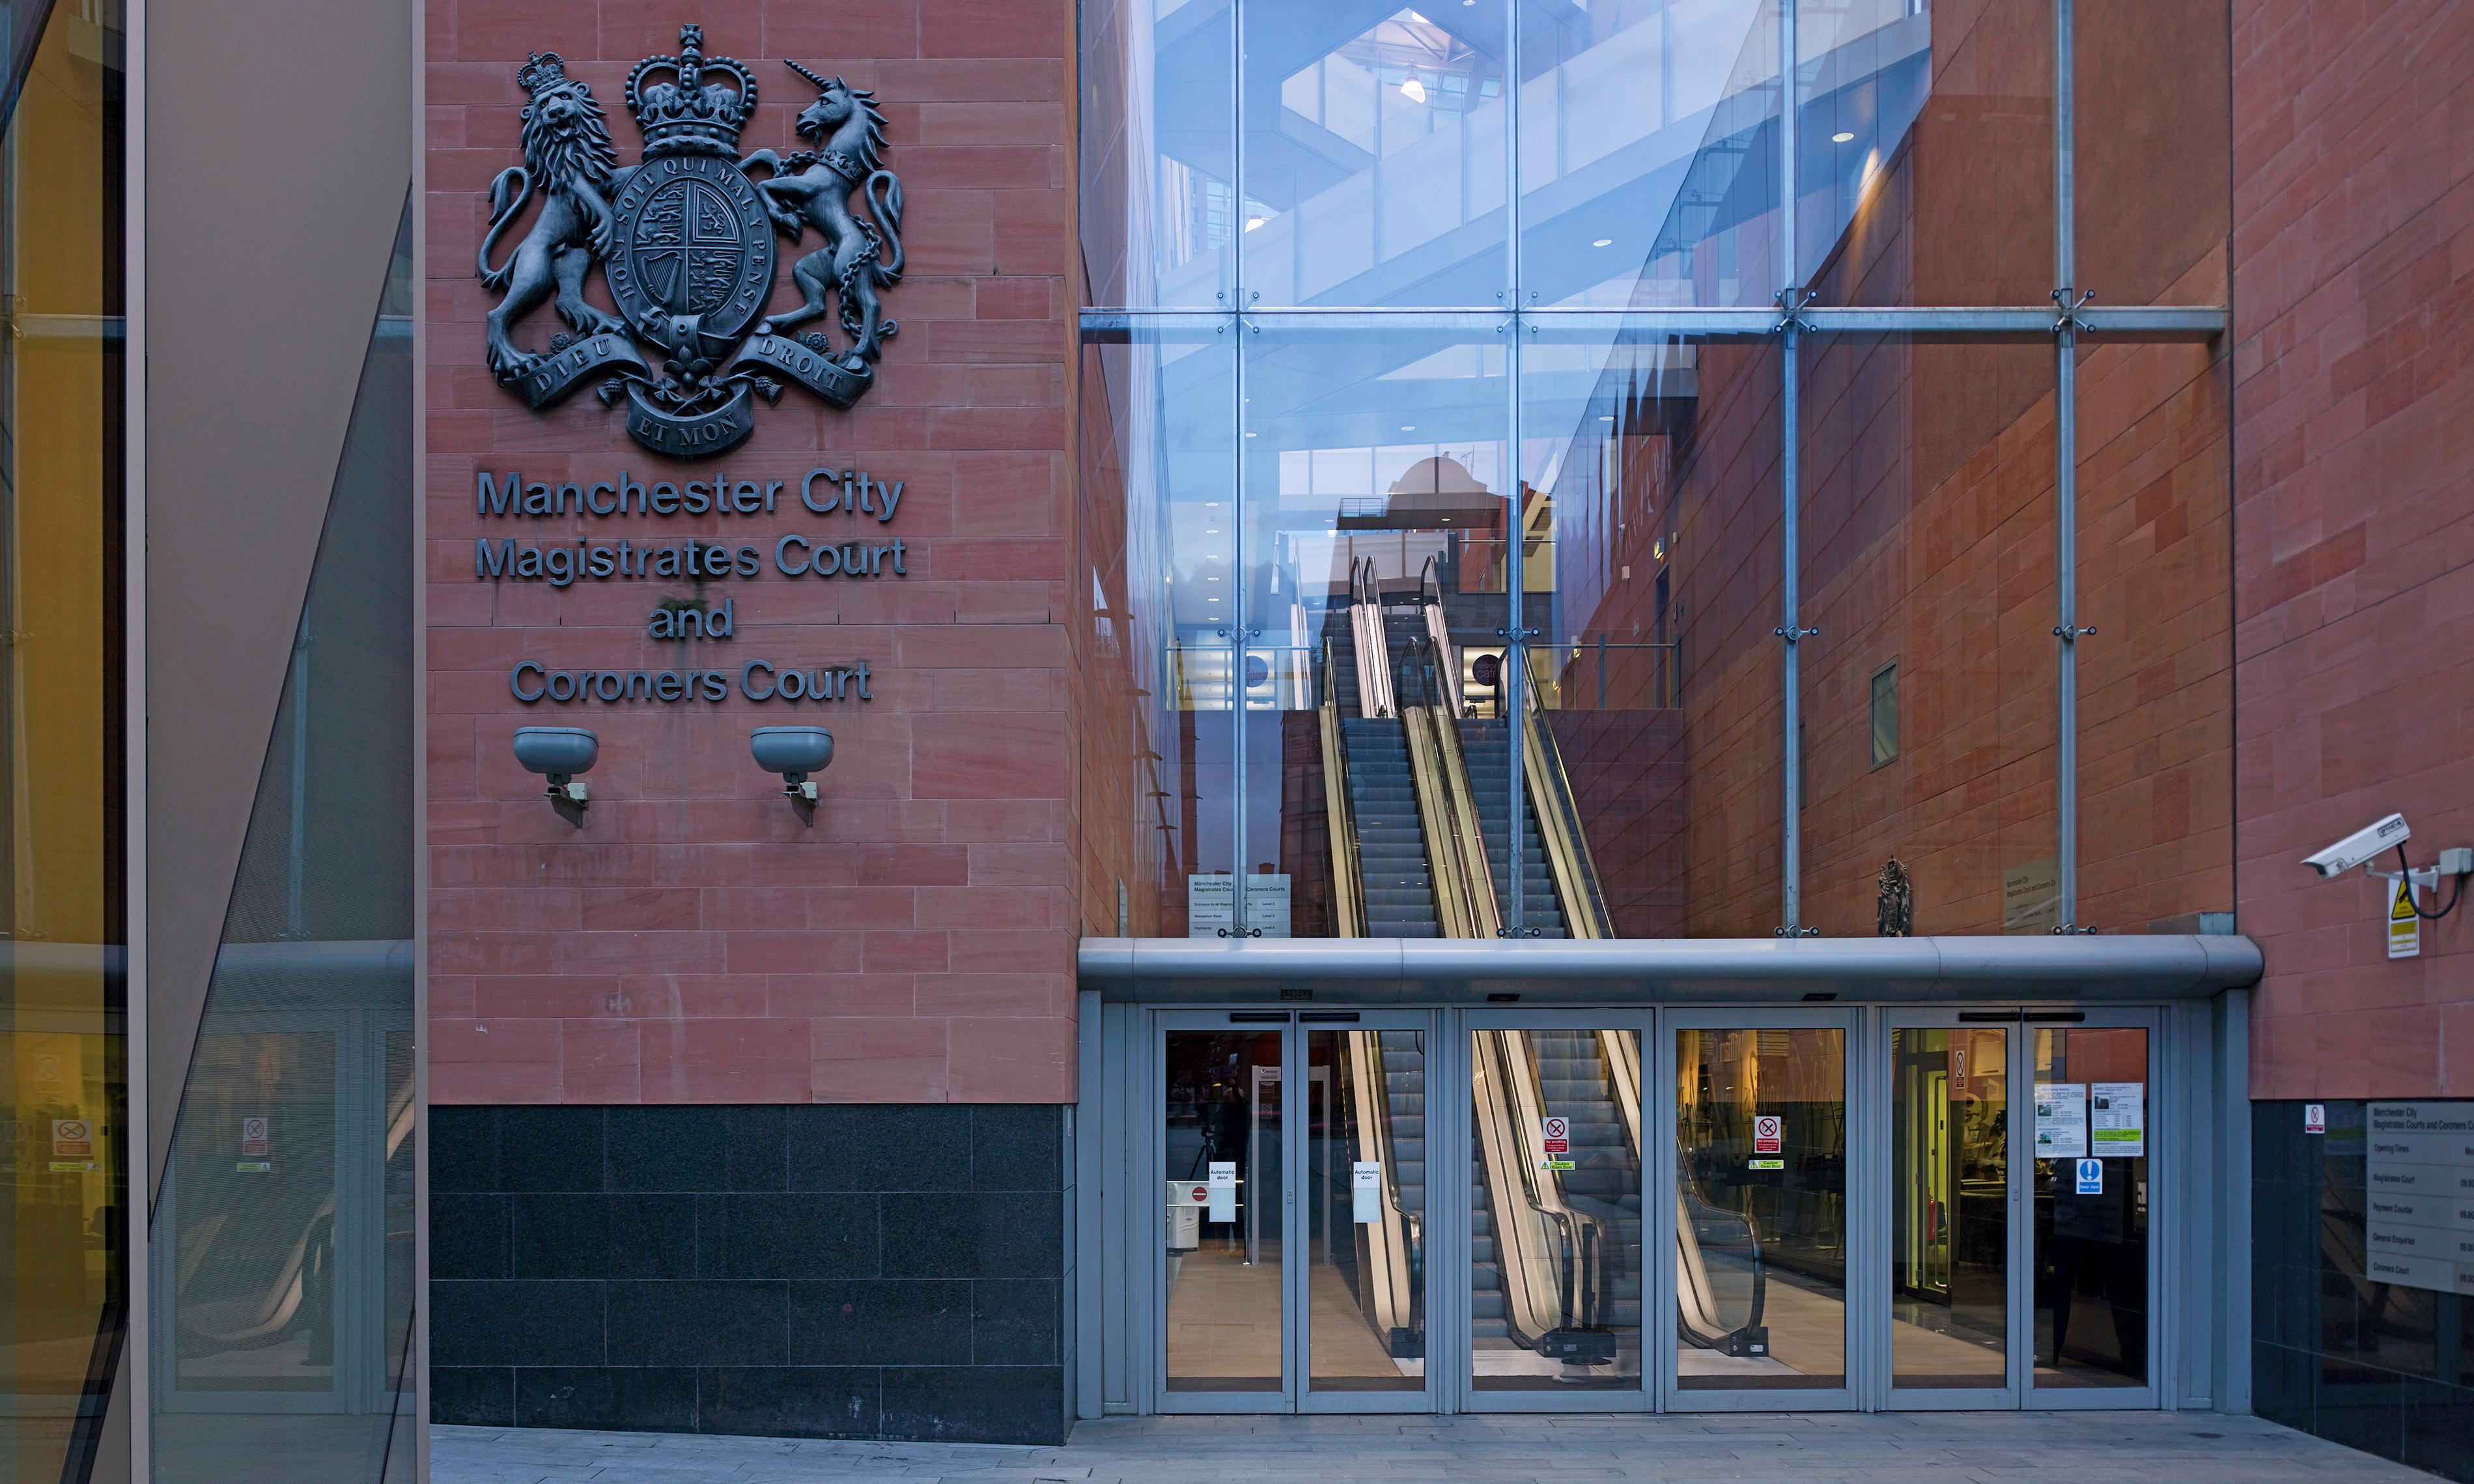 Teenager who threatened suicide on road prosecuted for second time